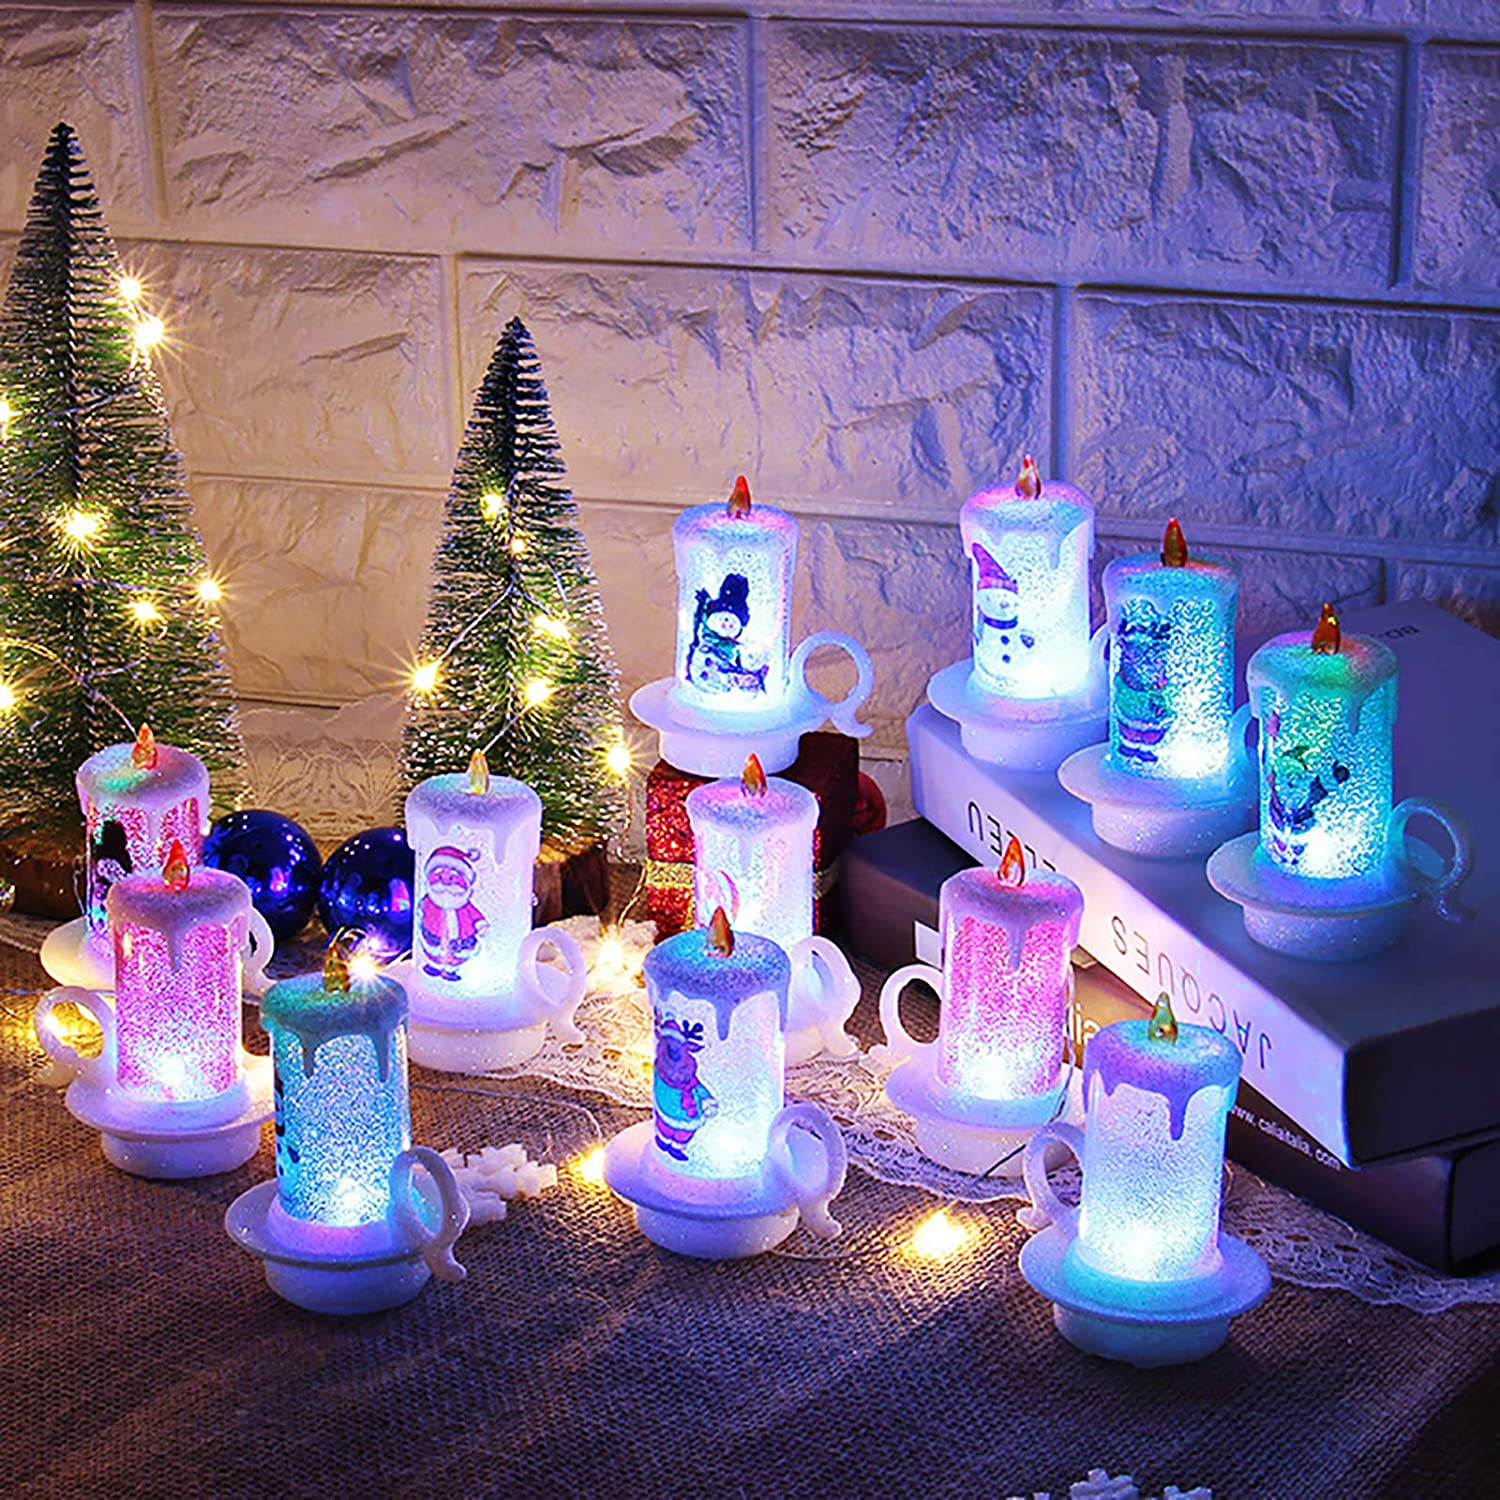 yournameI Snowman Doll Light Flameless Led Candle Lamp Animer and price Max 87% OFF revision C